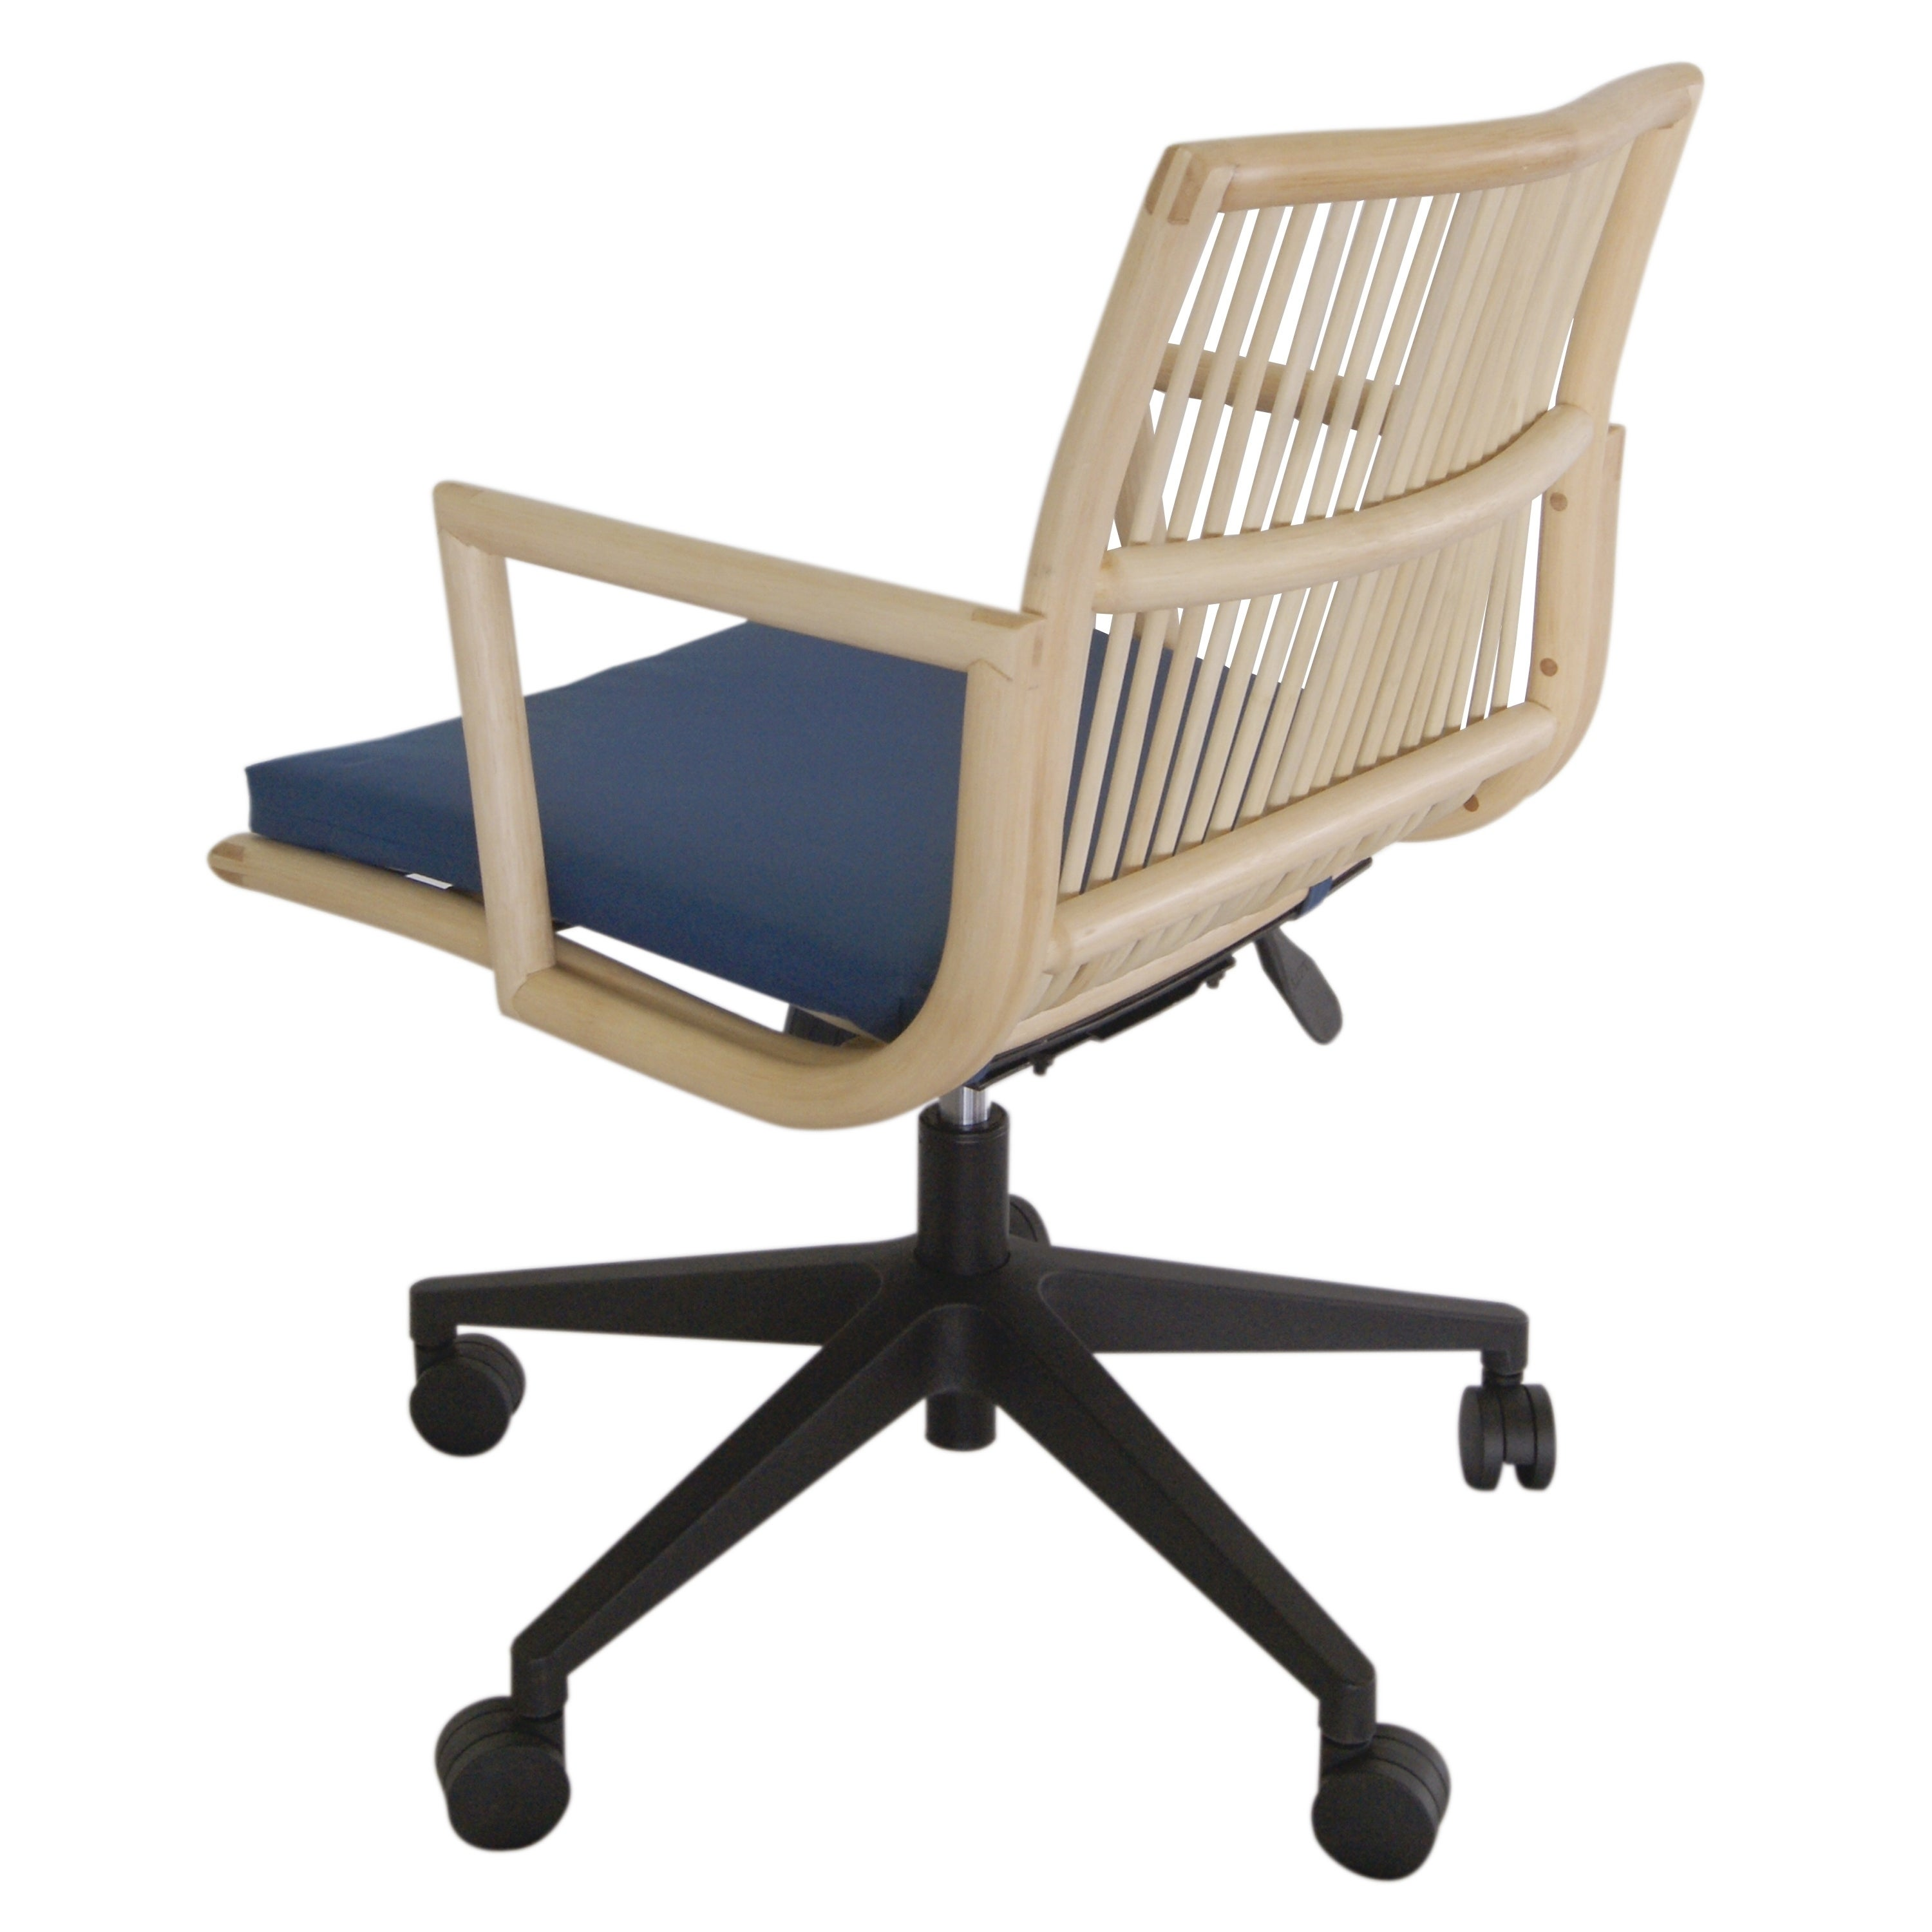 Virza Rattan Office Desk Chair With Cushion   Free Shipping Today    Overstock   24357678